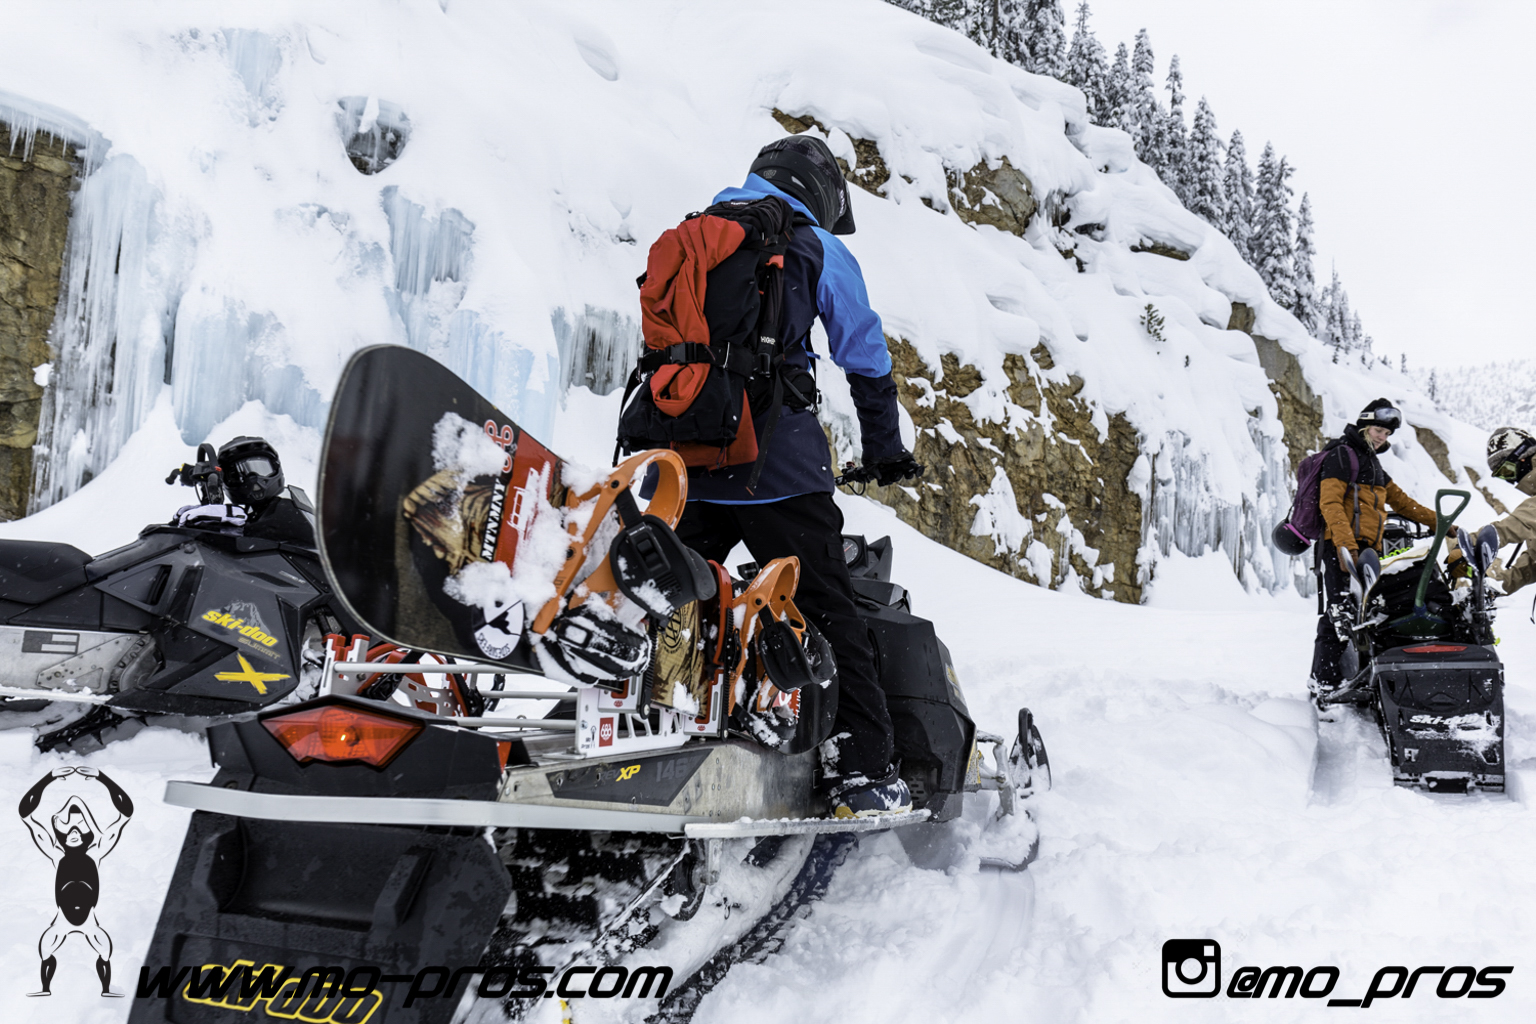 62_Tsaina Rack_Timbersled rack_Timbersled Rack_timbersled bag_snowmobile bag_Snowmobile_Snowboarding_Snowboard rack_snowboard_Snowbike_Ski_Rack_LinQ Snowboard Ski_Gun Rack_Gear_gas Rack_Cheetah Facto.jpg